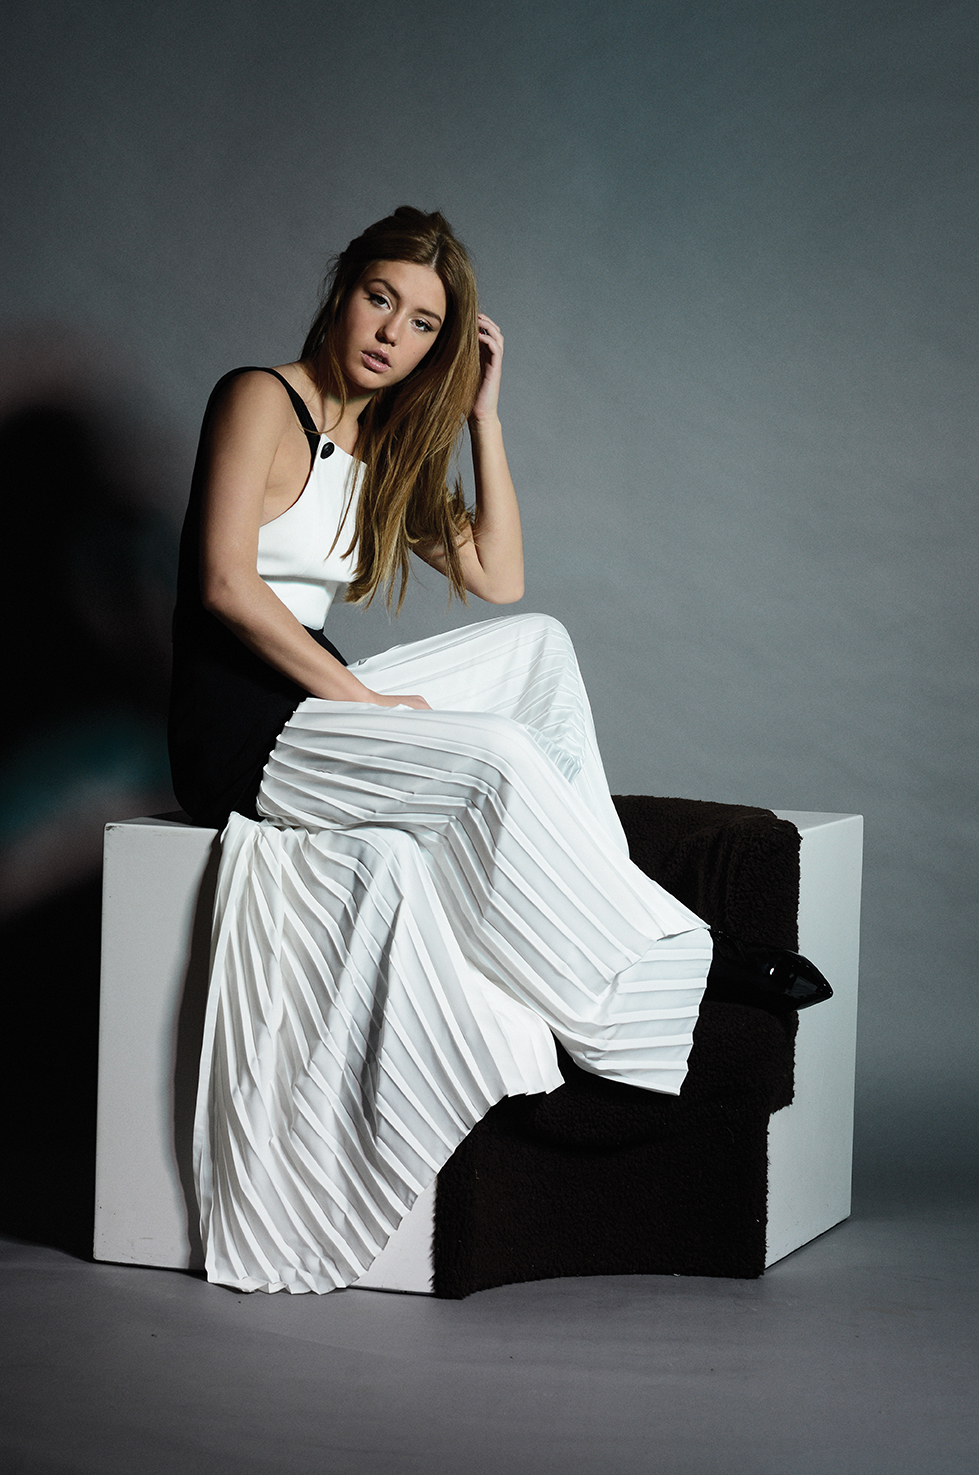 Ad 232 Le Exarchopoulos On Acting Crash Magazine